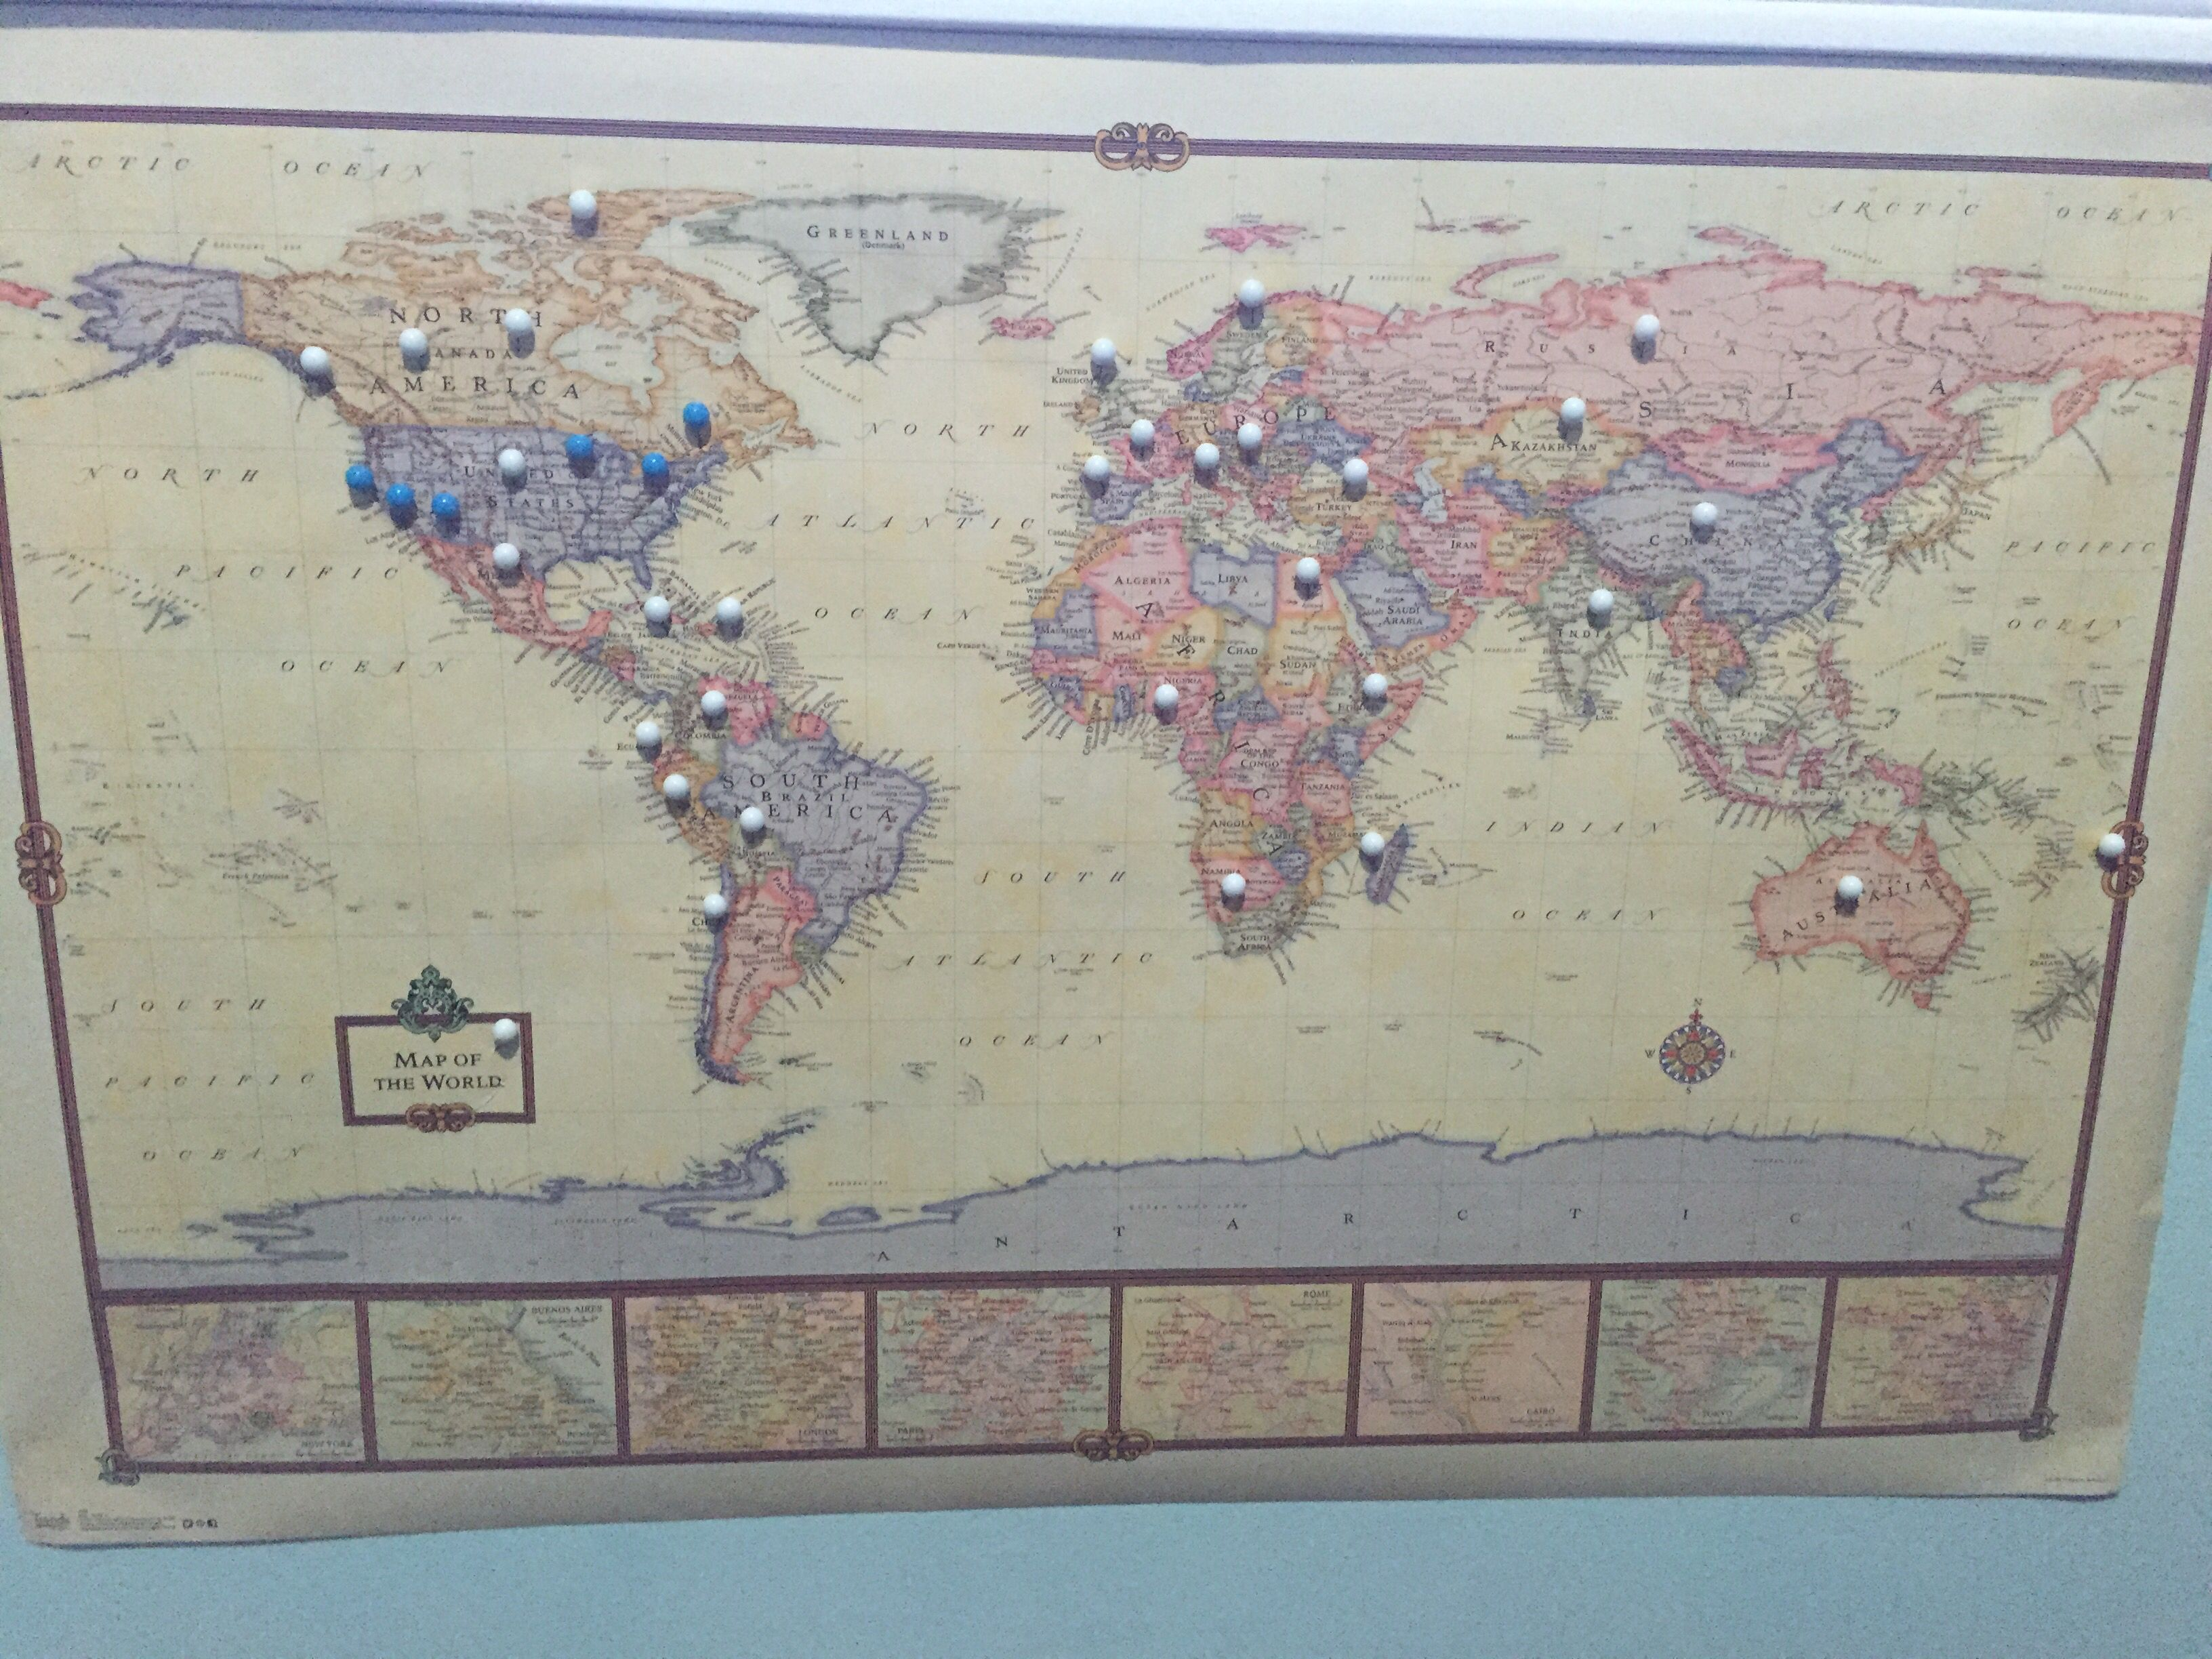 Buy A World Map Poster Purchase Pushpins Different Colours One - Buy map posters